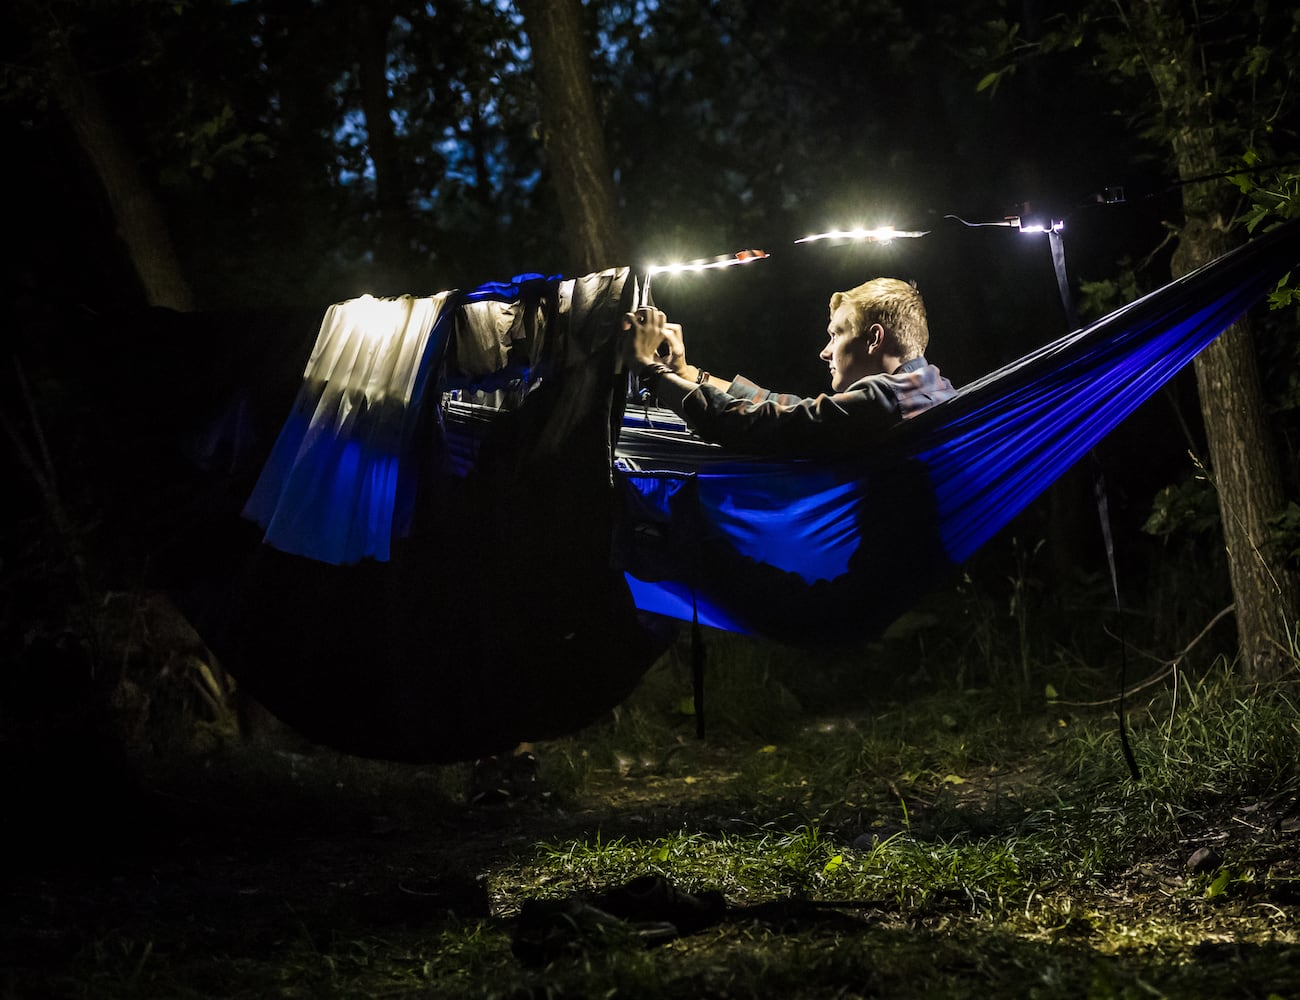 SHEL Ultralight Hammock Shelter · SHEL Ultralight Hammock Shelter - SHEL Ultralight Hammock Shelter » Gadget Flow